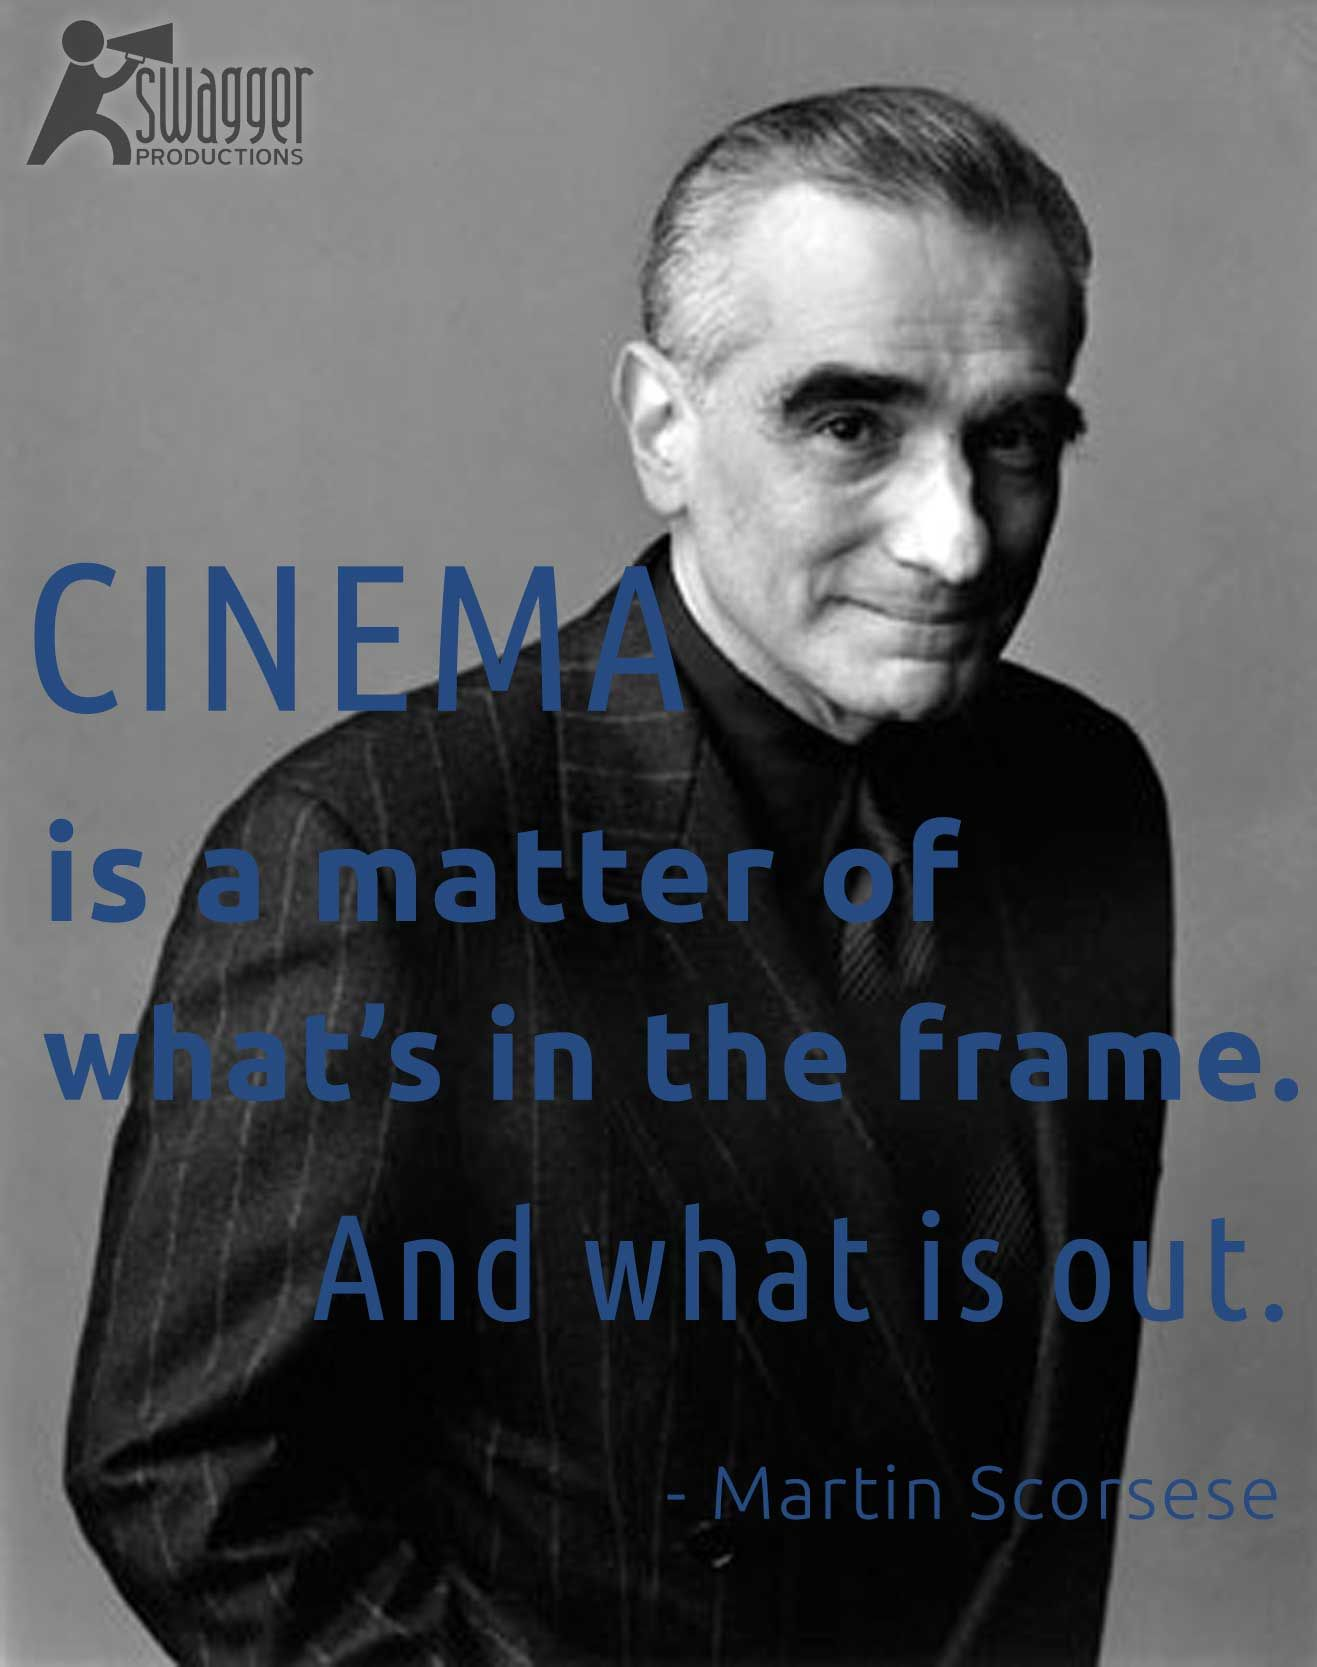 Short Movie Quotes Martin Scorcesequote Film Cinema  Filmmaking  Pinterest